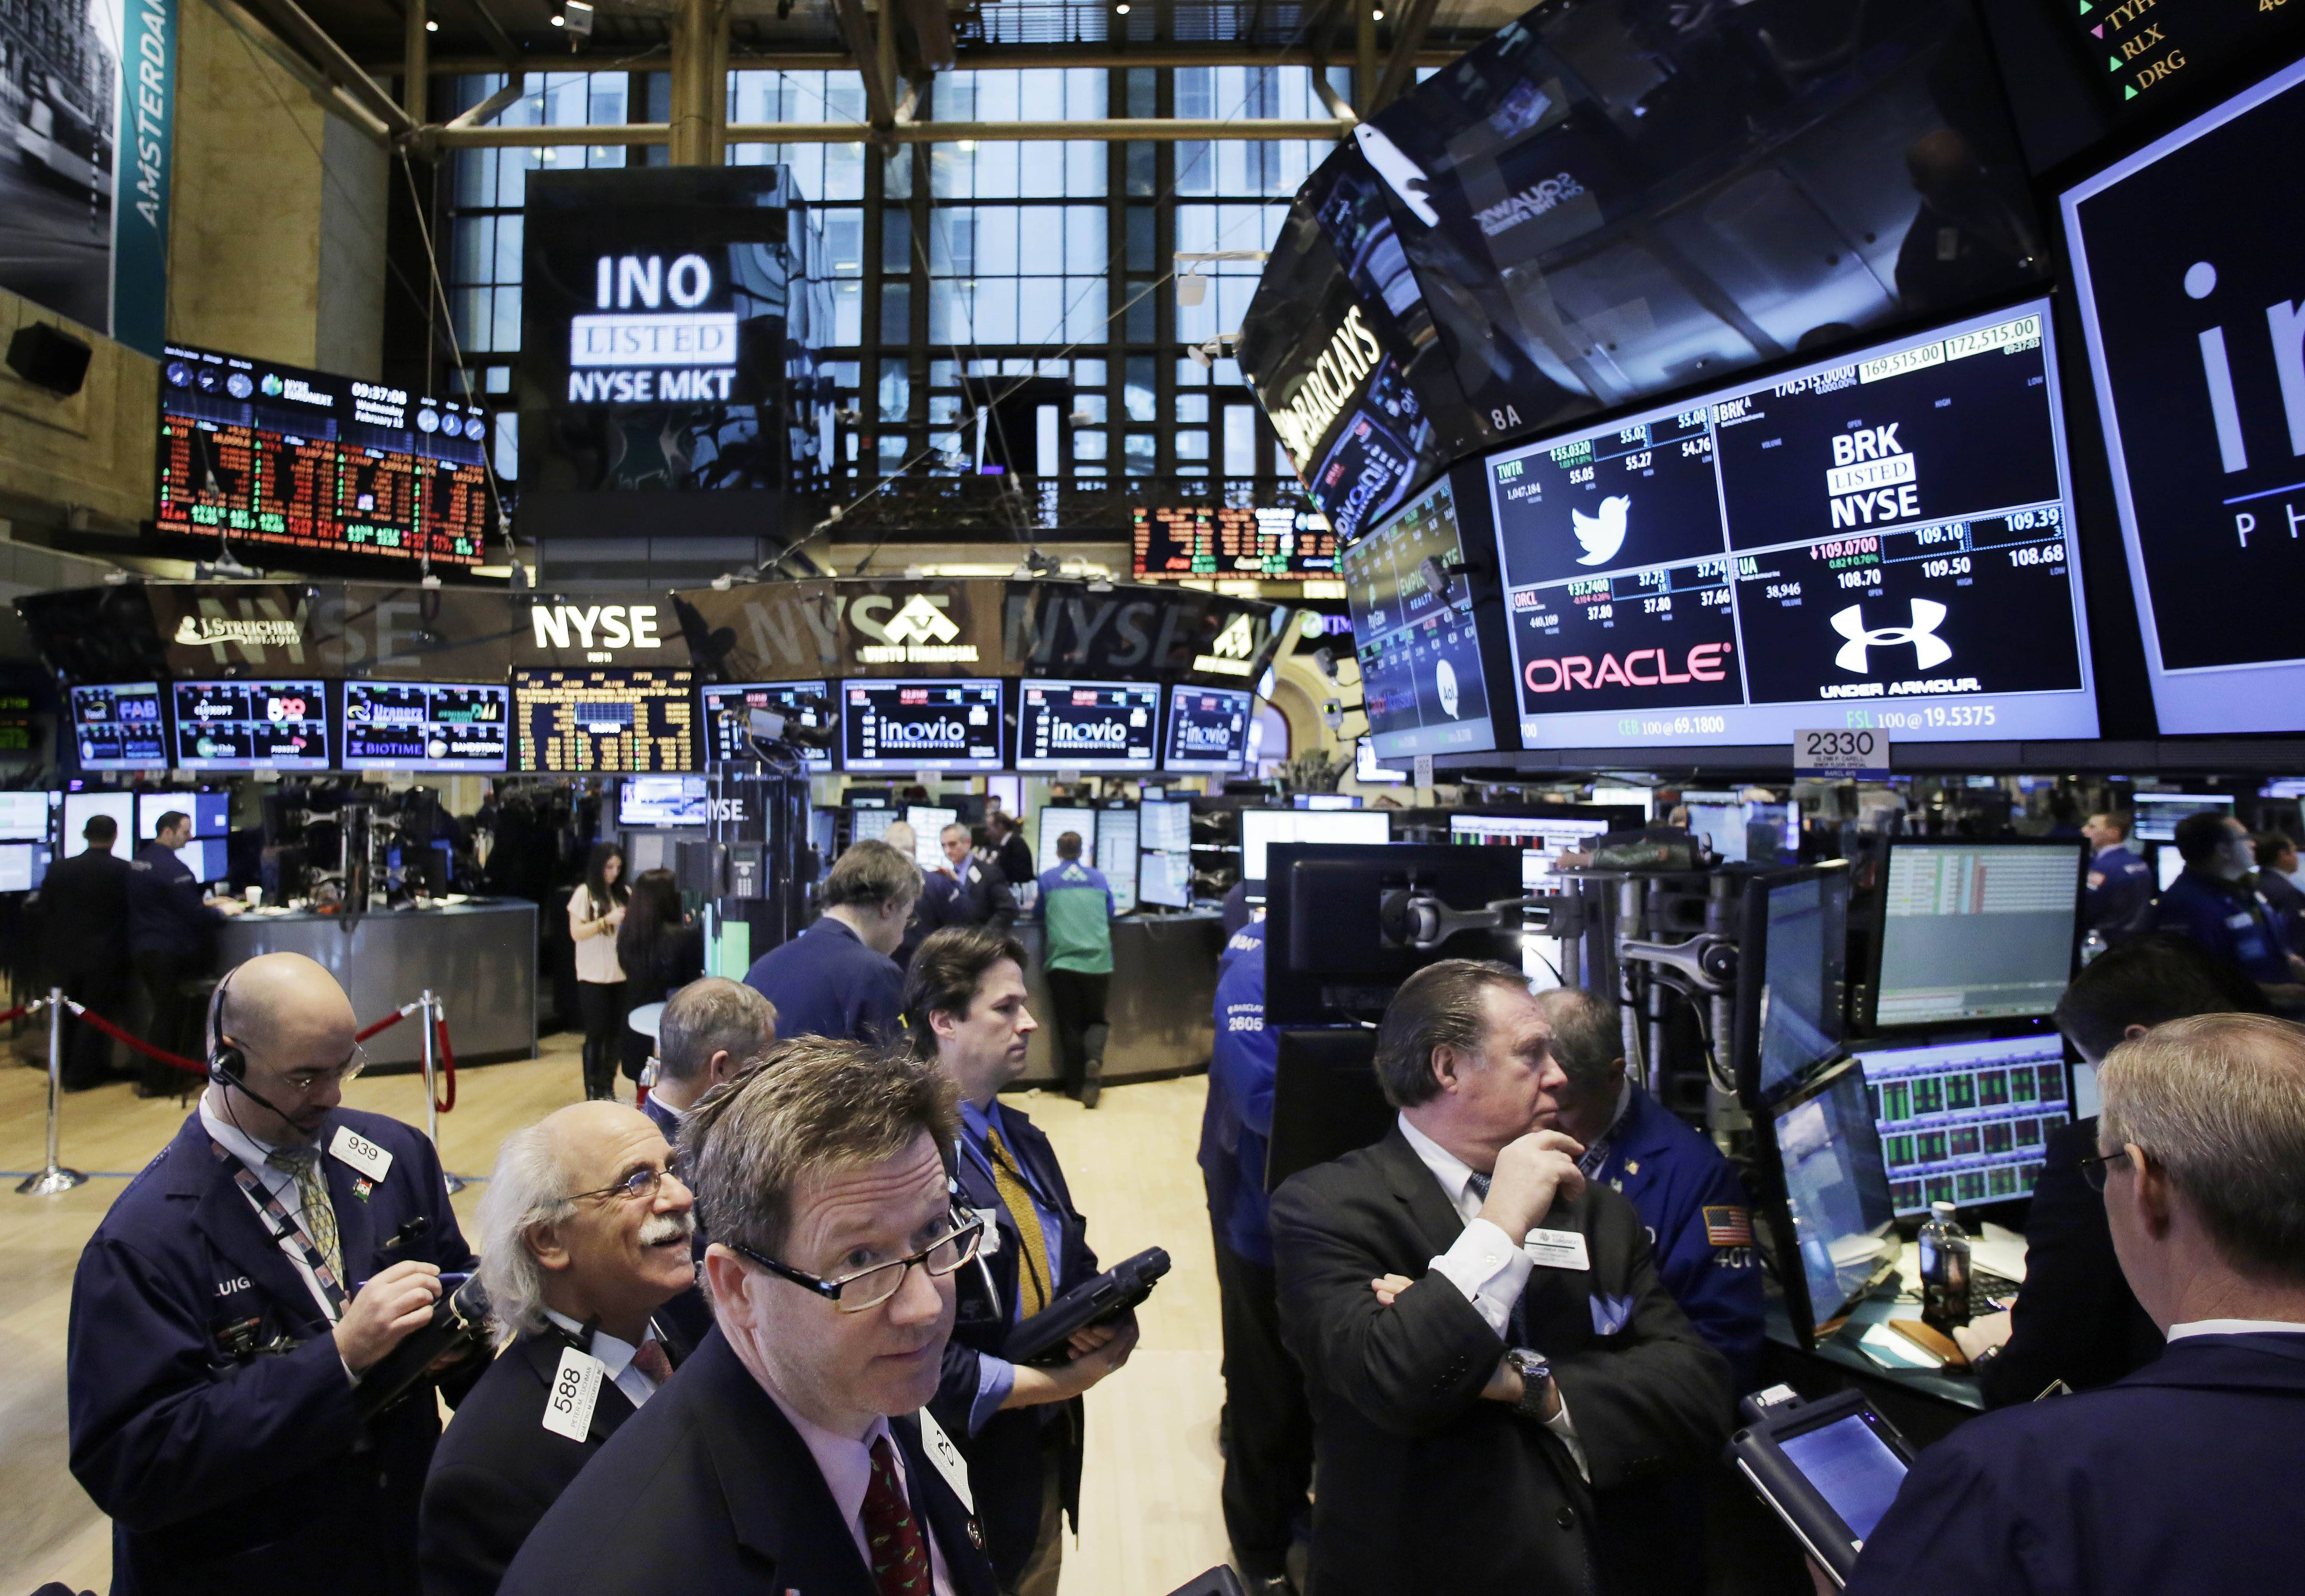 Traders monitor stock prices last week at the New York Stock Exchange. Stocks were mostly higher in midday trading Tuesday as investors returned from a long holiday weekend.